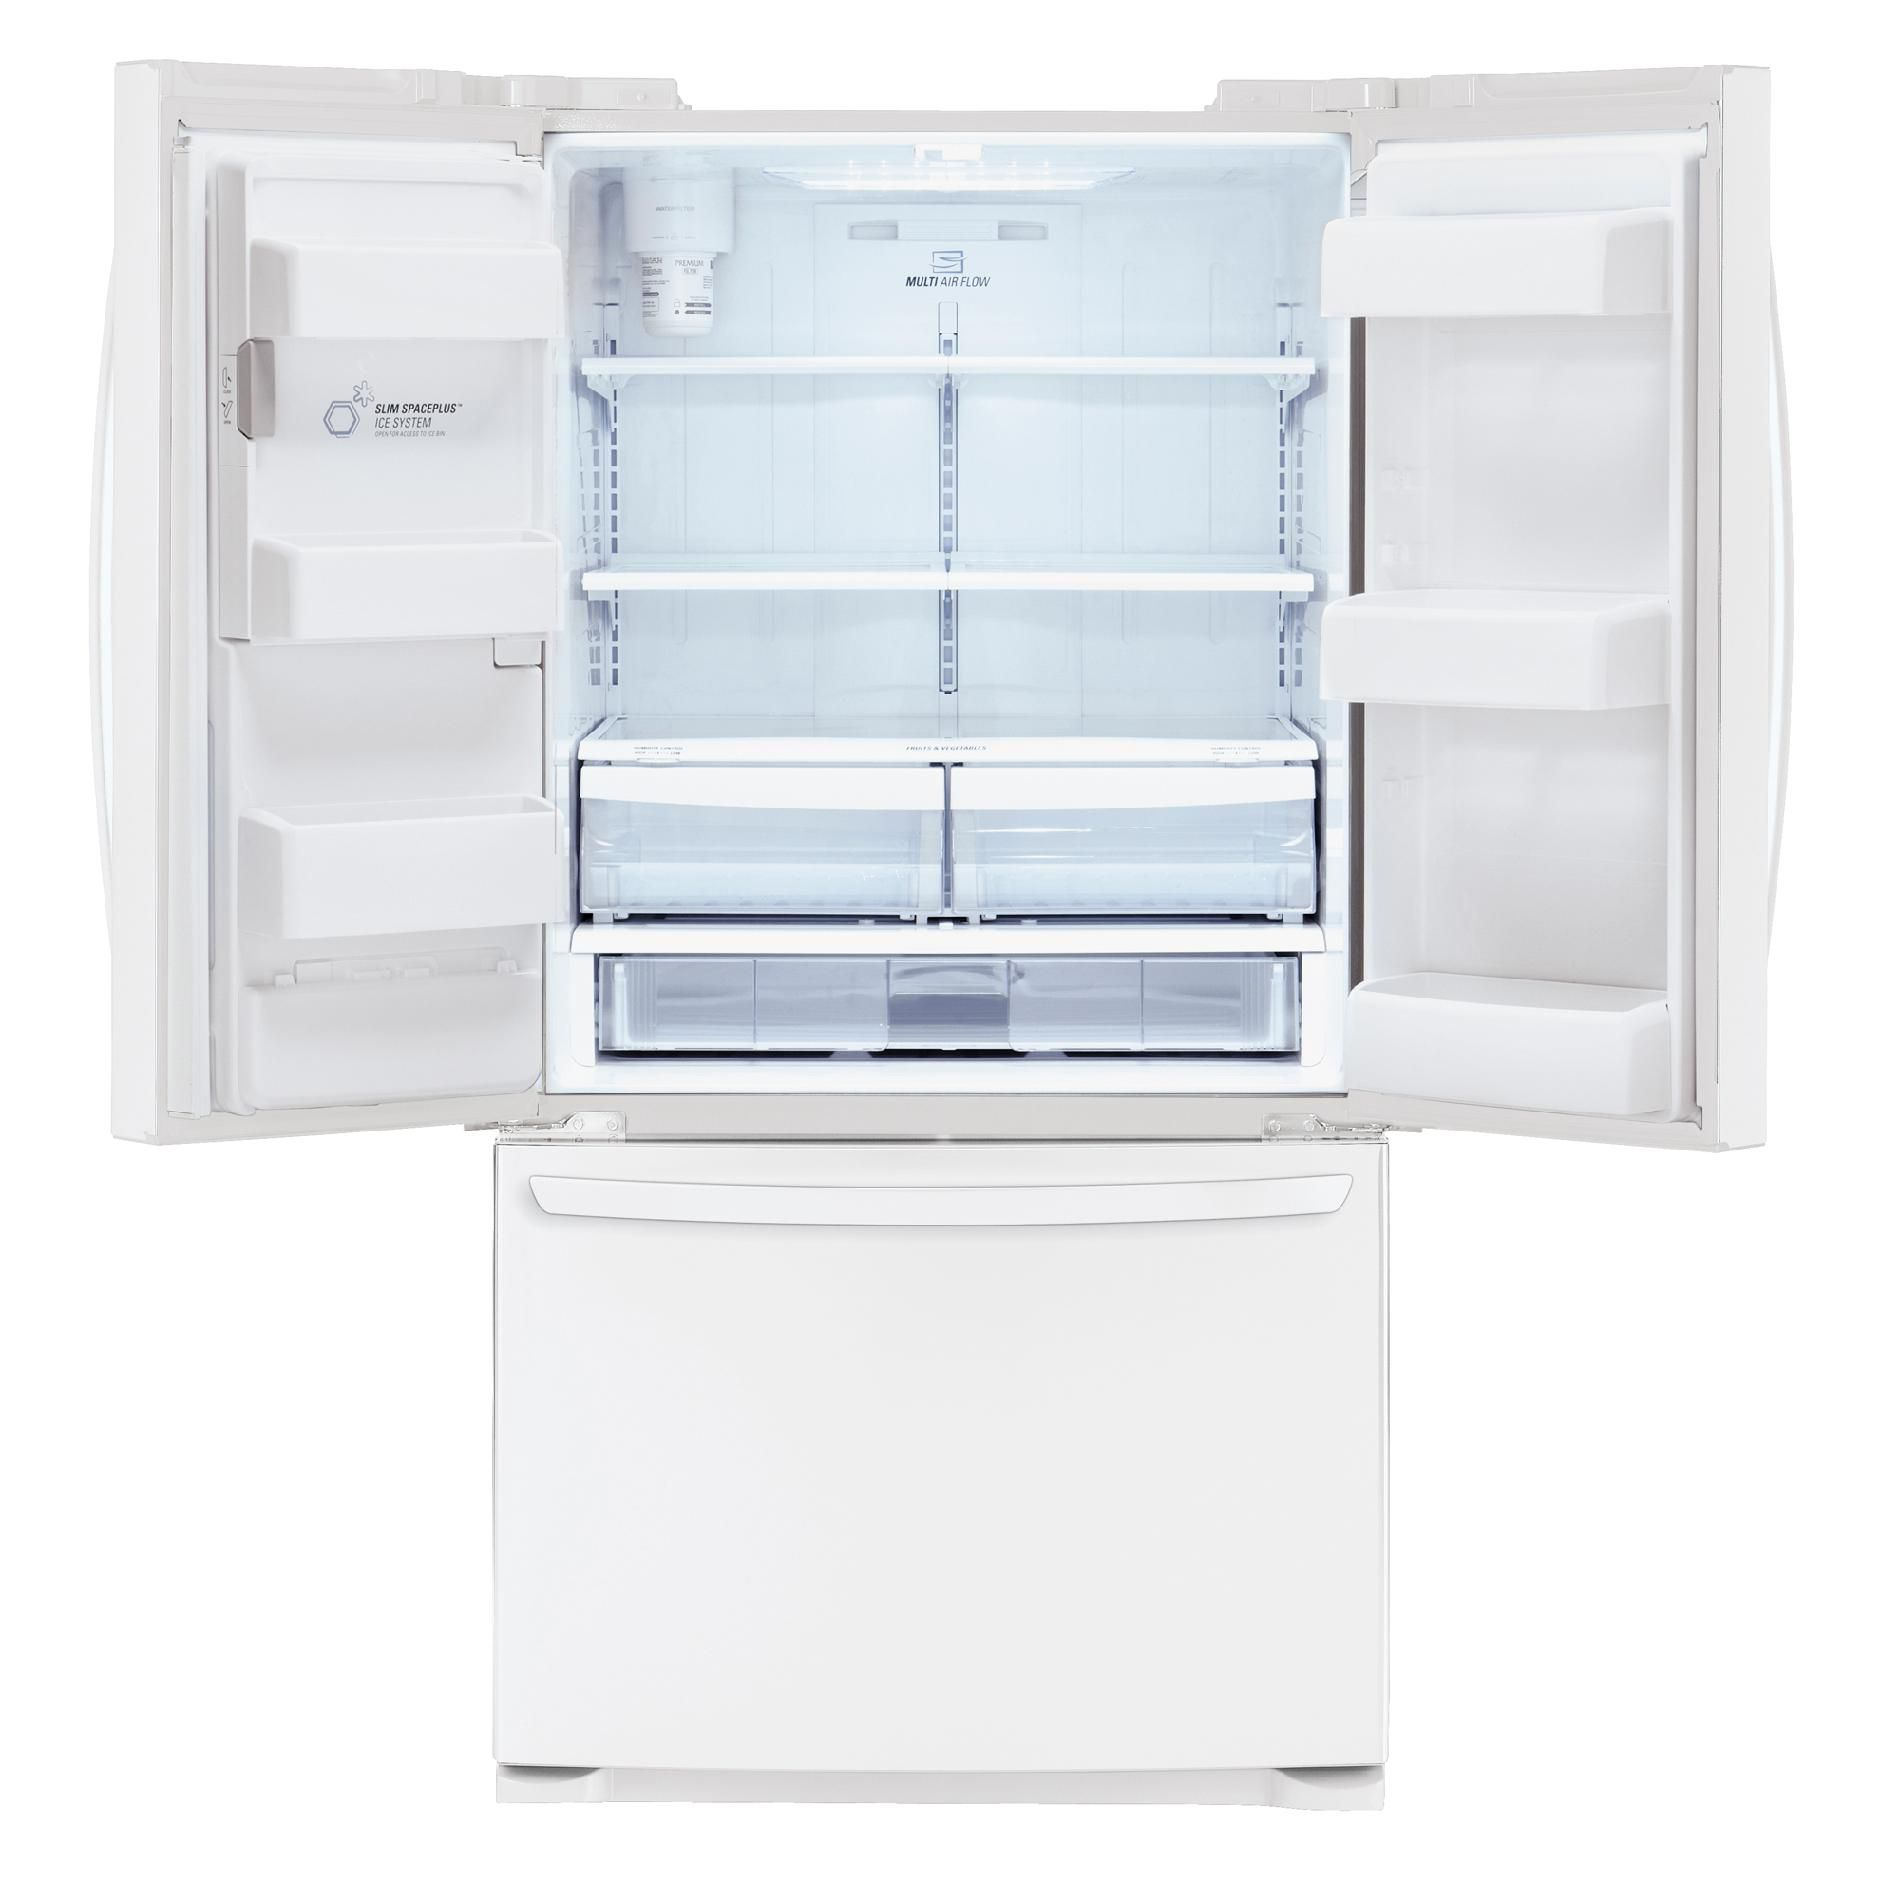 LG LFX25974SW 24.7 cu. ft. White French Door Bottom-Freezer Refrigerator w/ Smart Cooling Technology